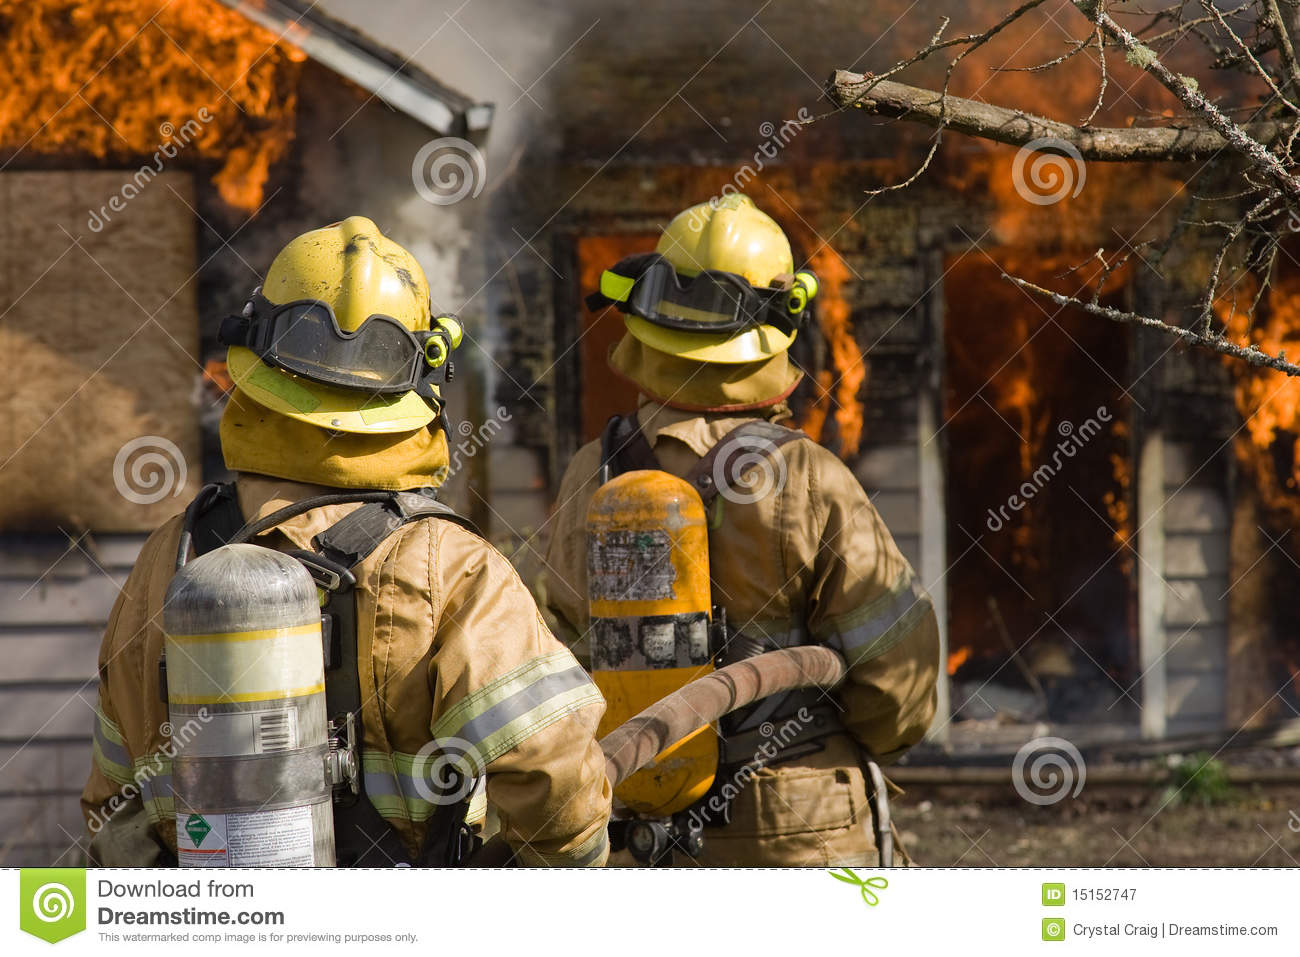 Firefighters standing by